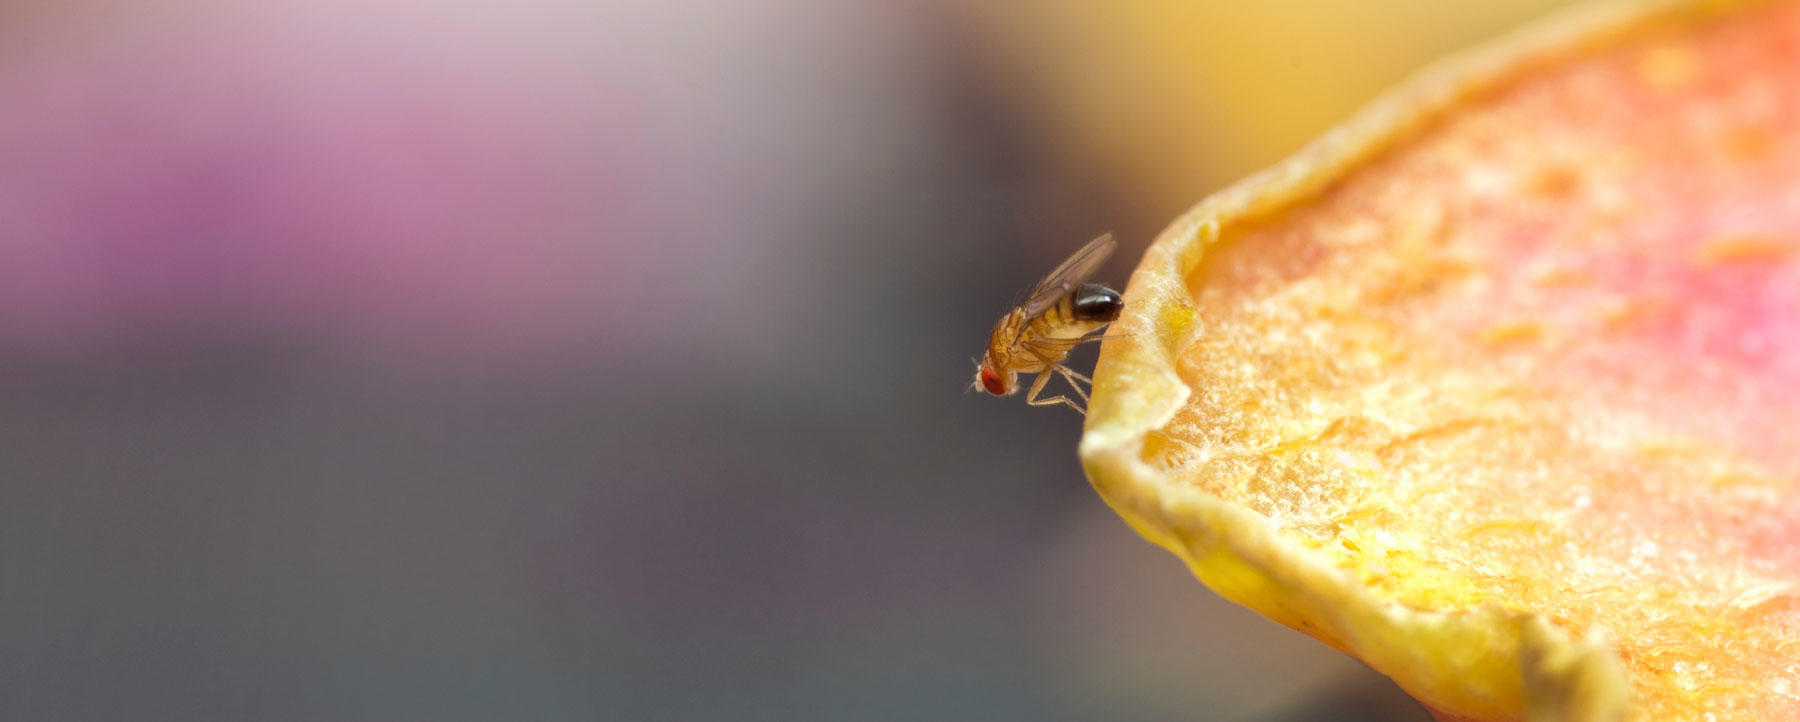 Fruit fly on colorful object